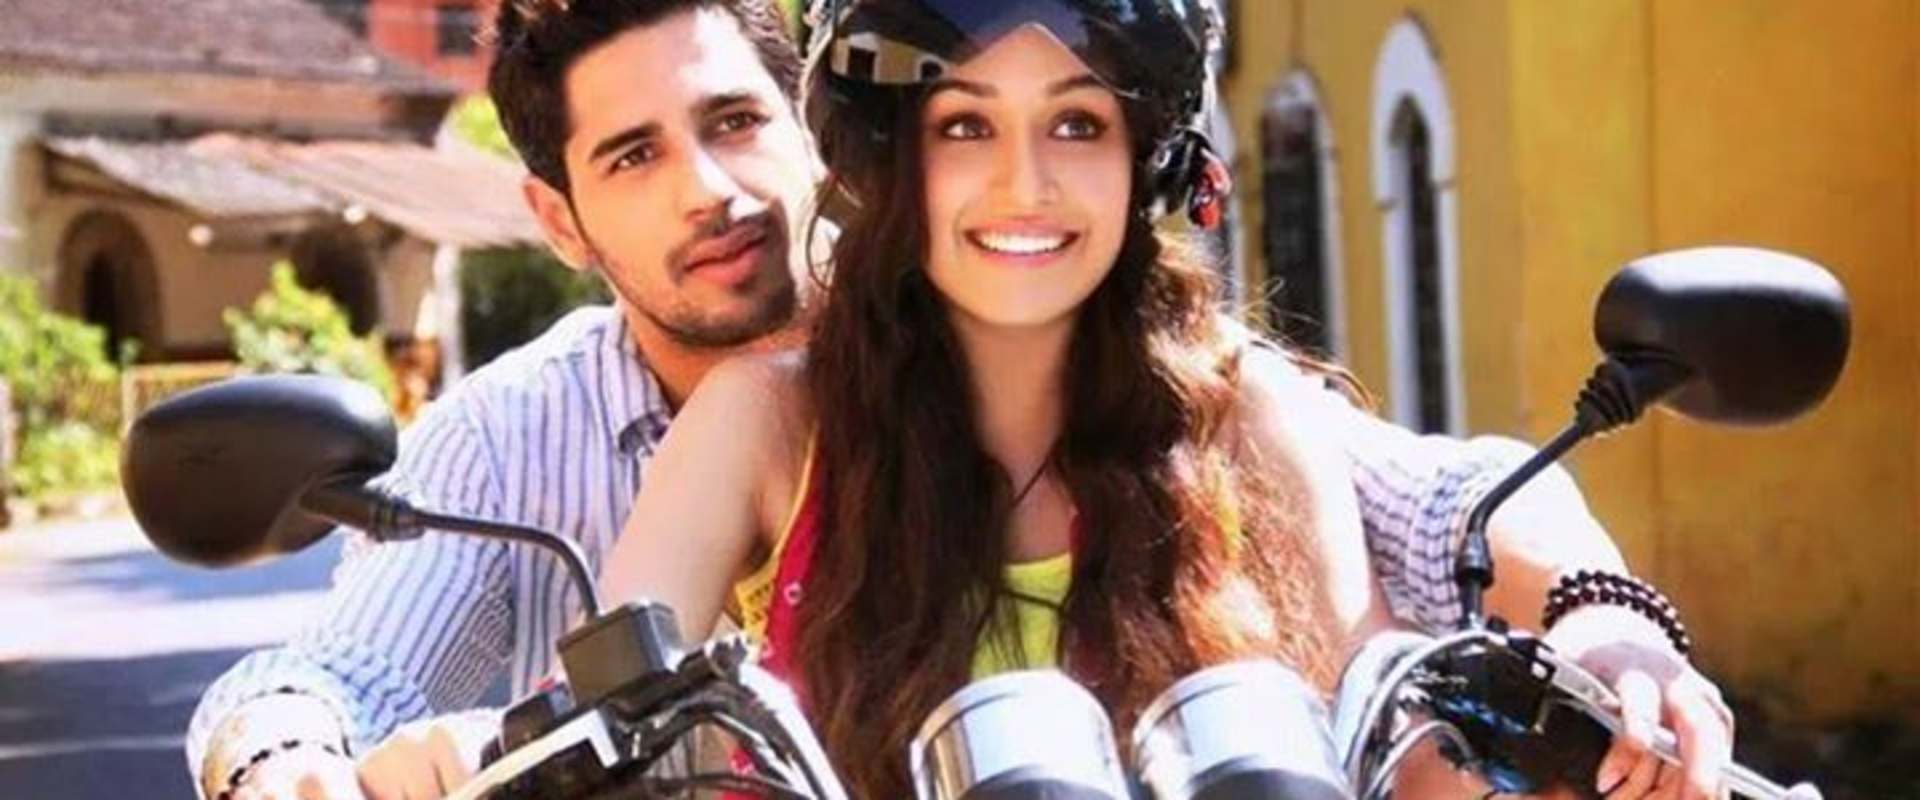 Ek Villain background 1